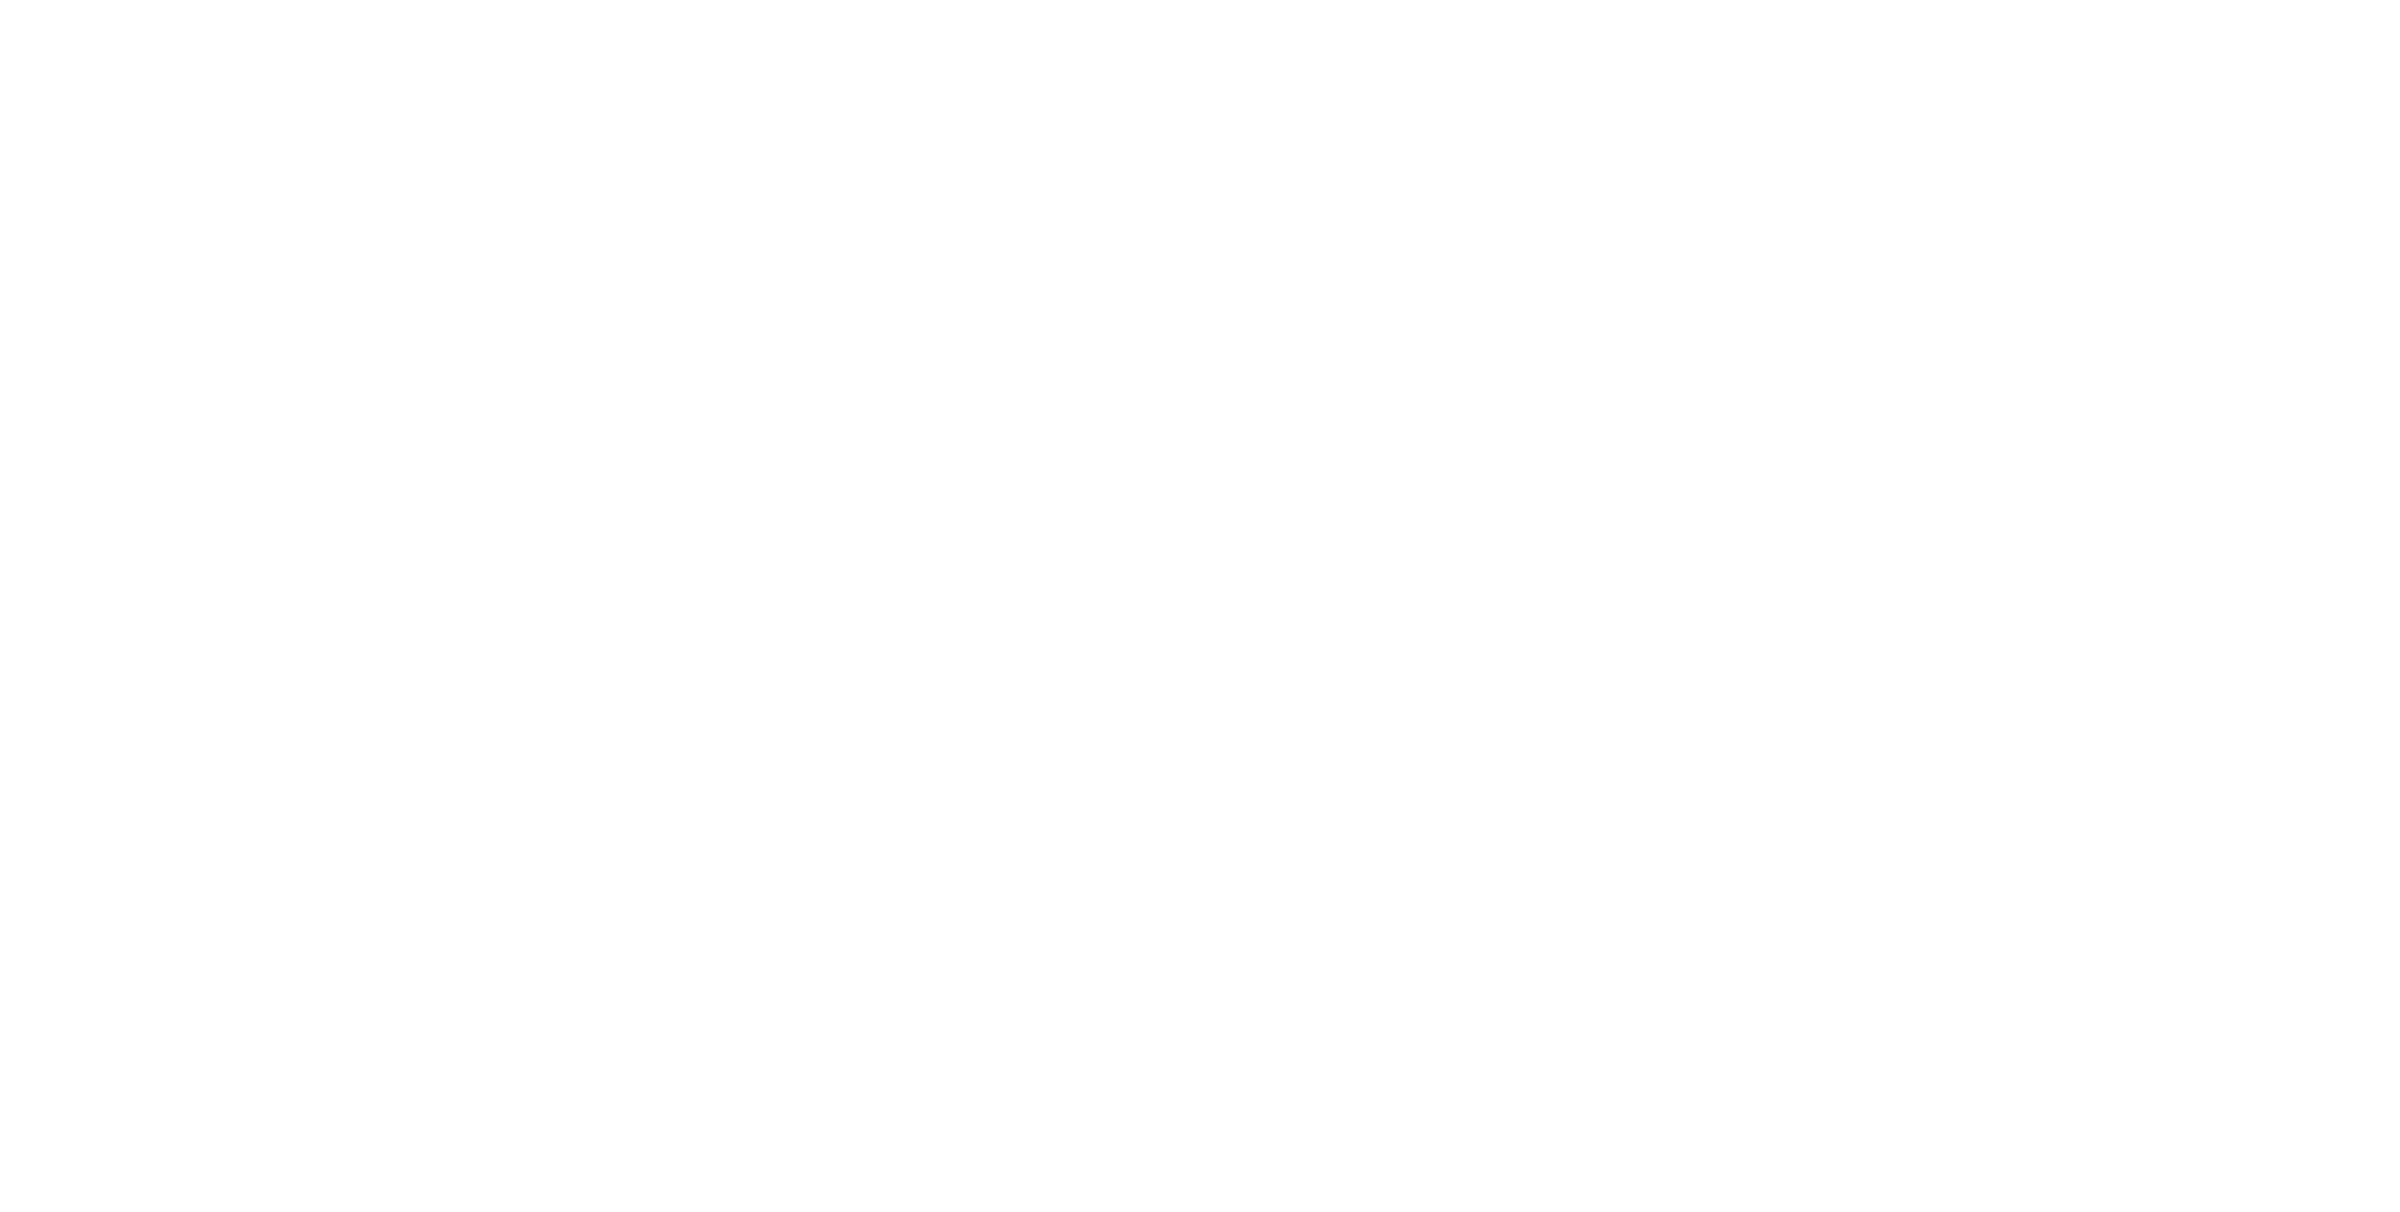 Android Wear Logo PNG Transparent & SVG Vector - Freebie ...